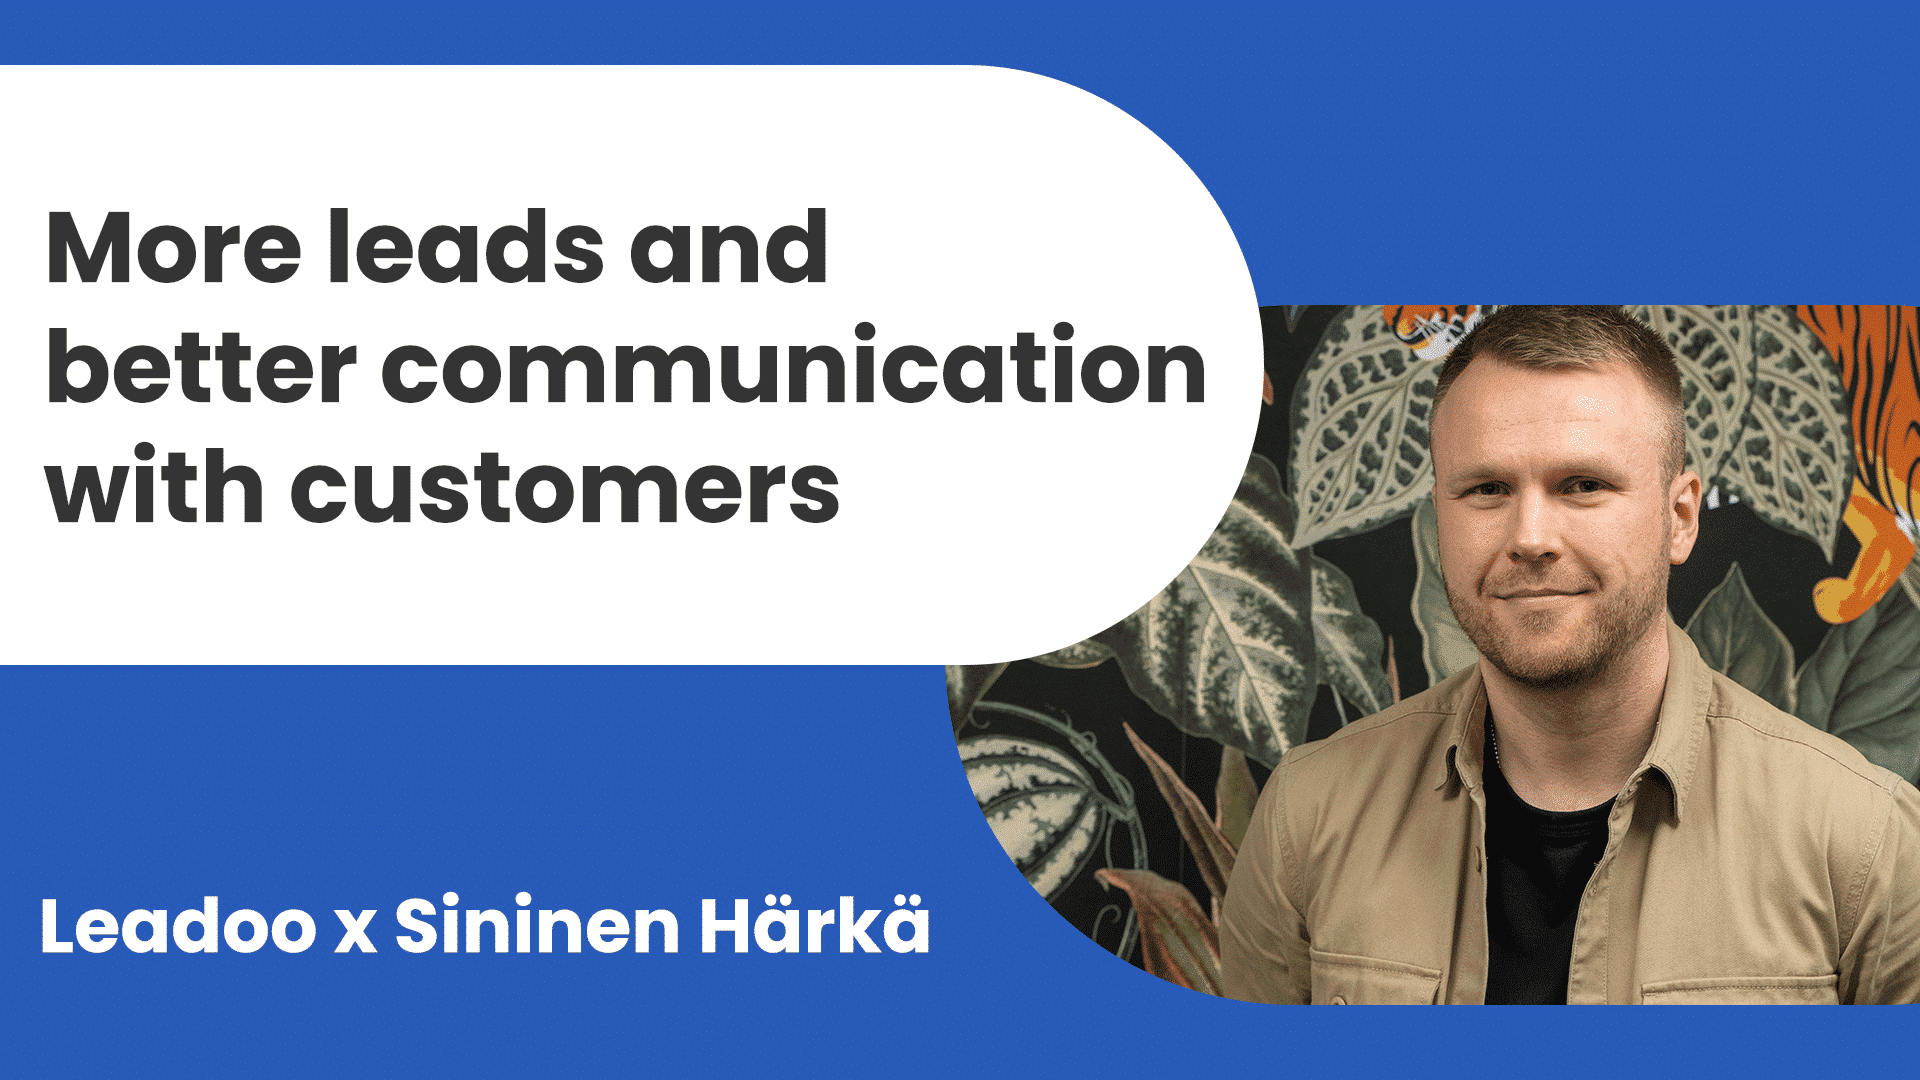 Leadoo x Sininen Härkä – Instant increase in leads and better communication with customers